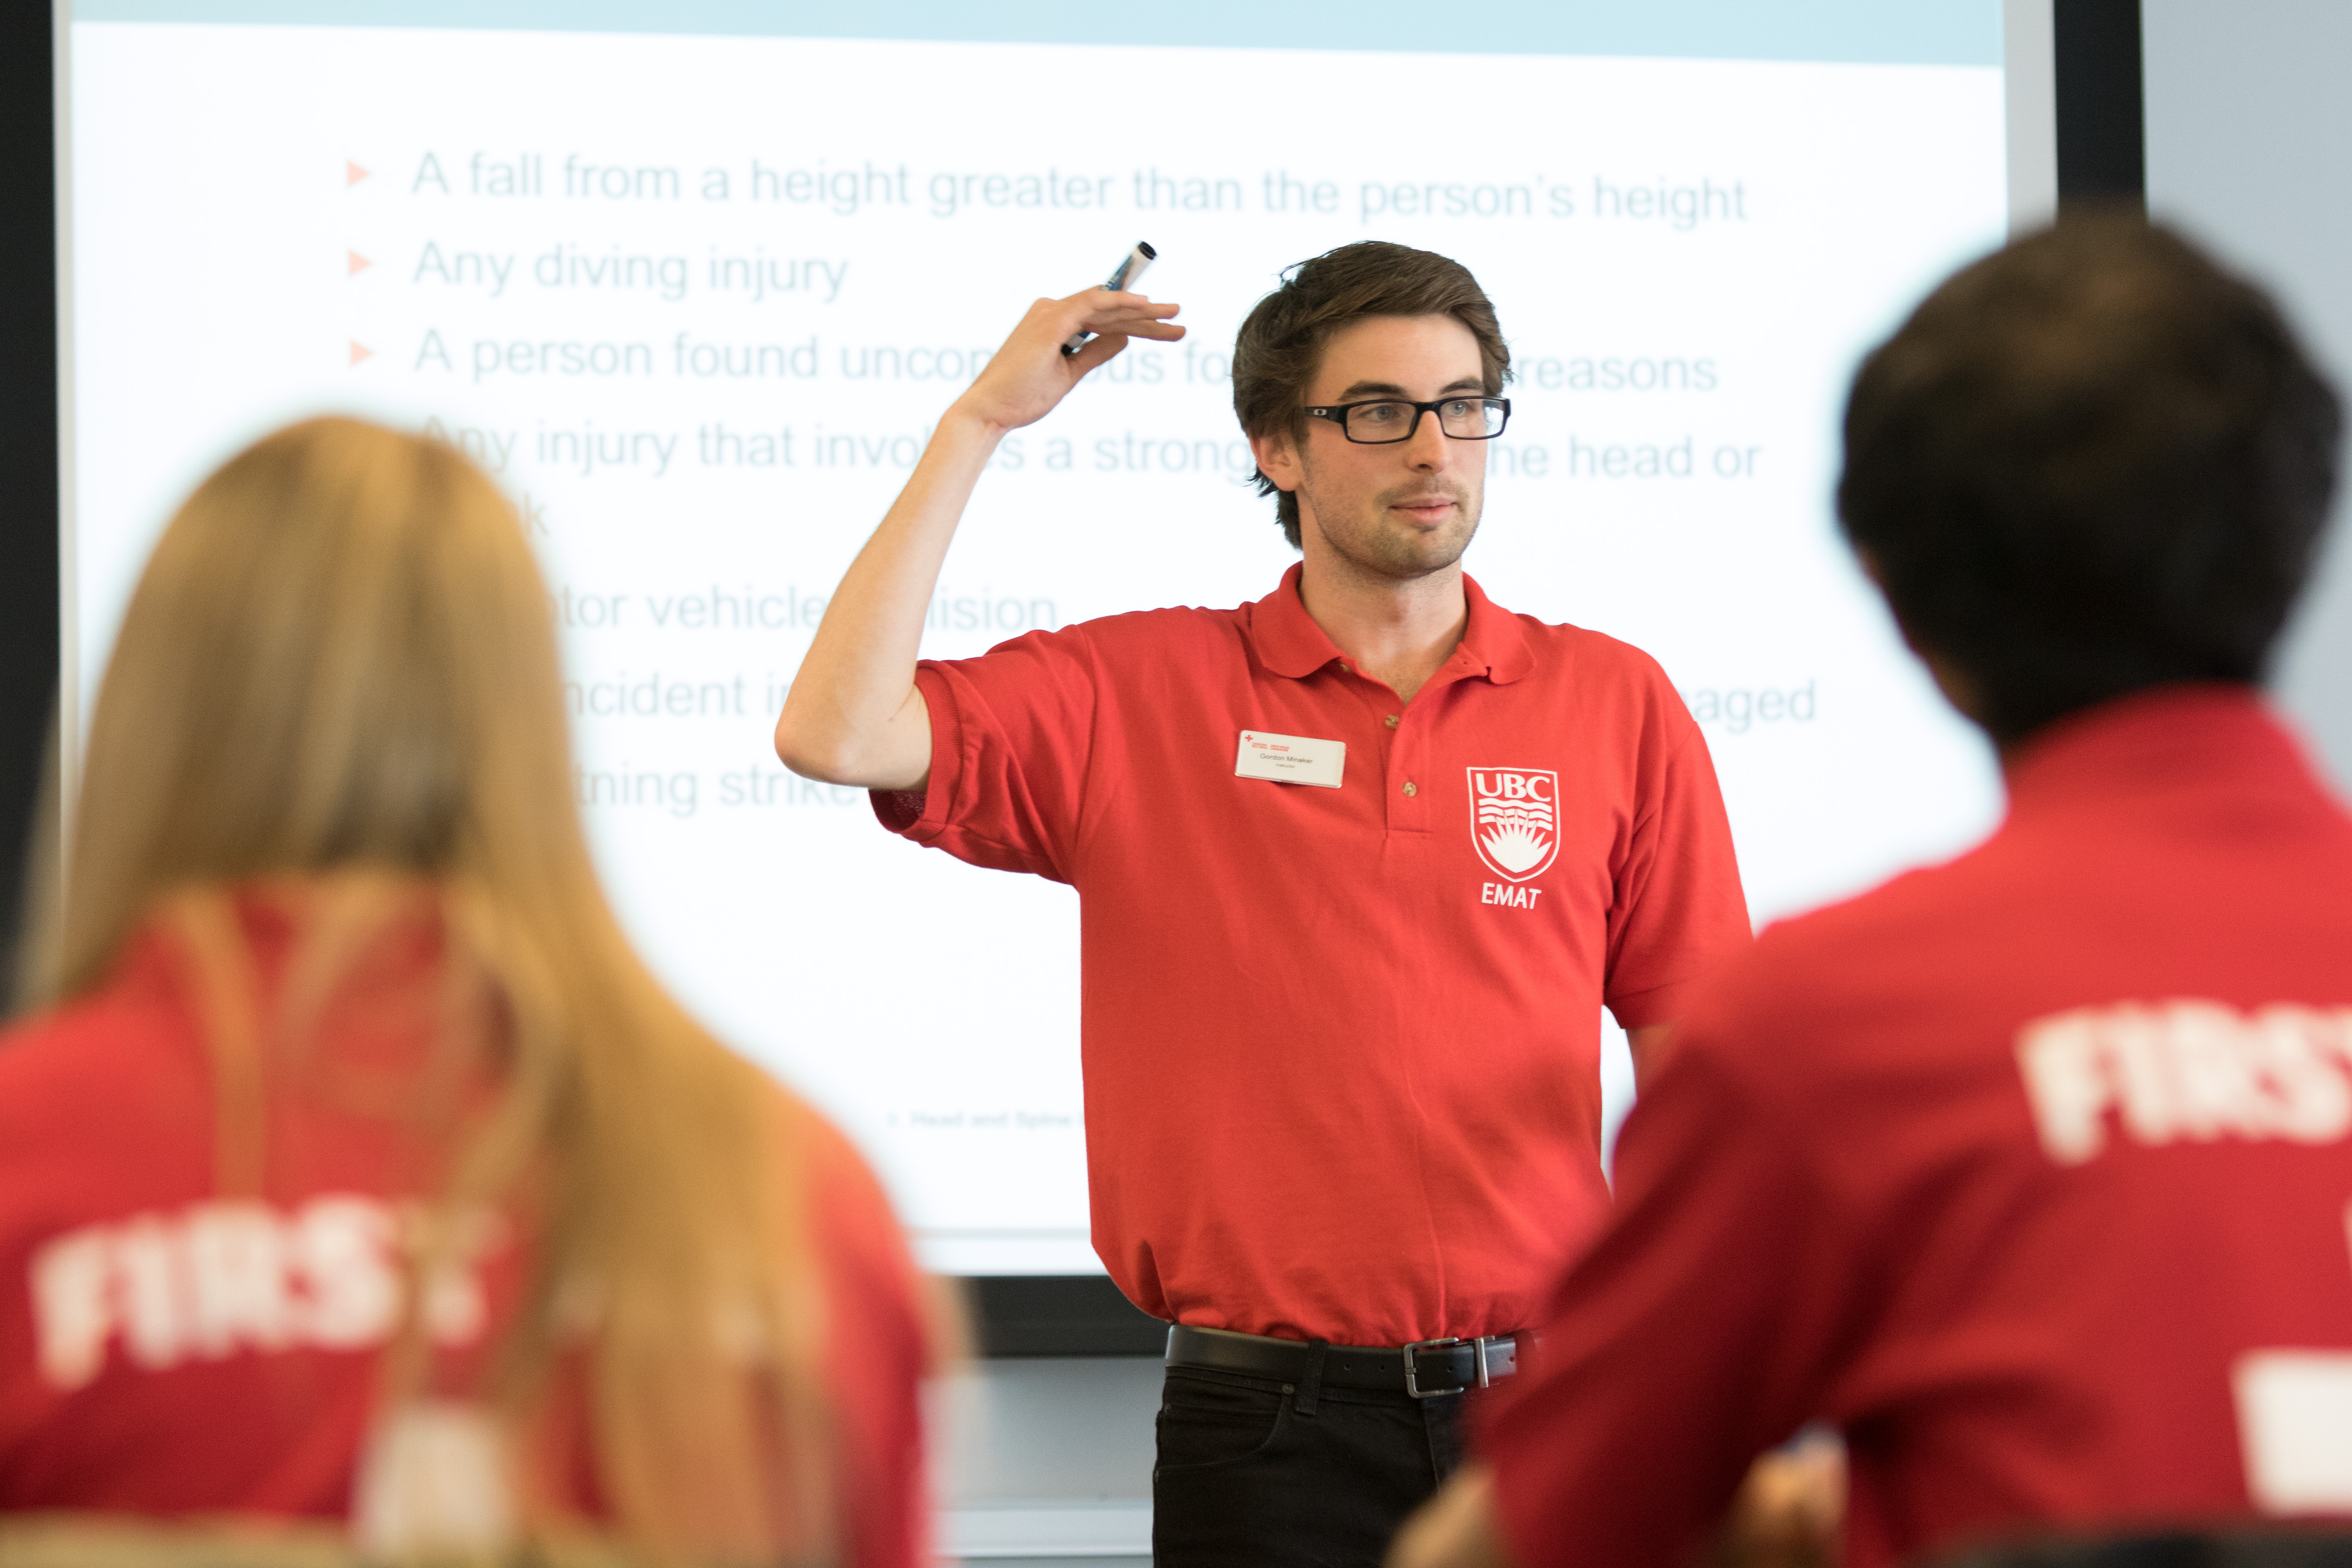 Emergency medical aid team leads a workshop on event safety